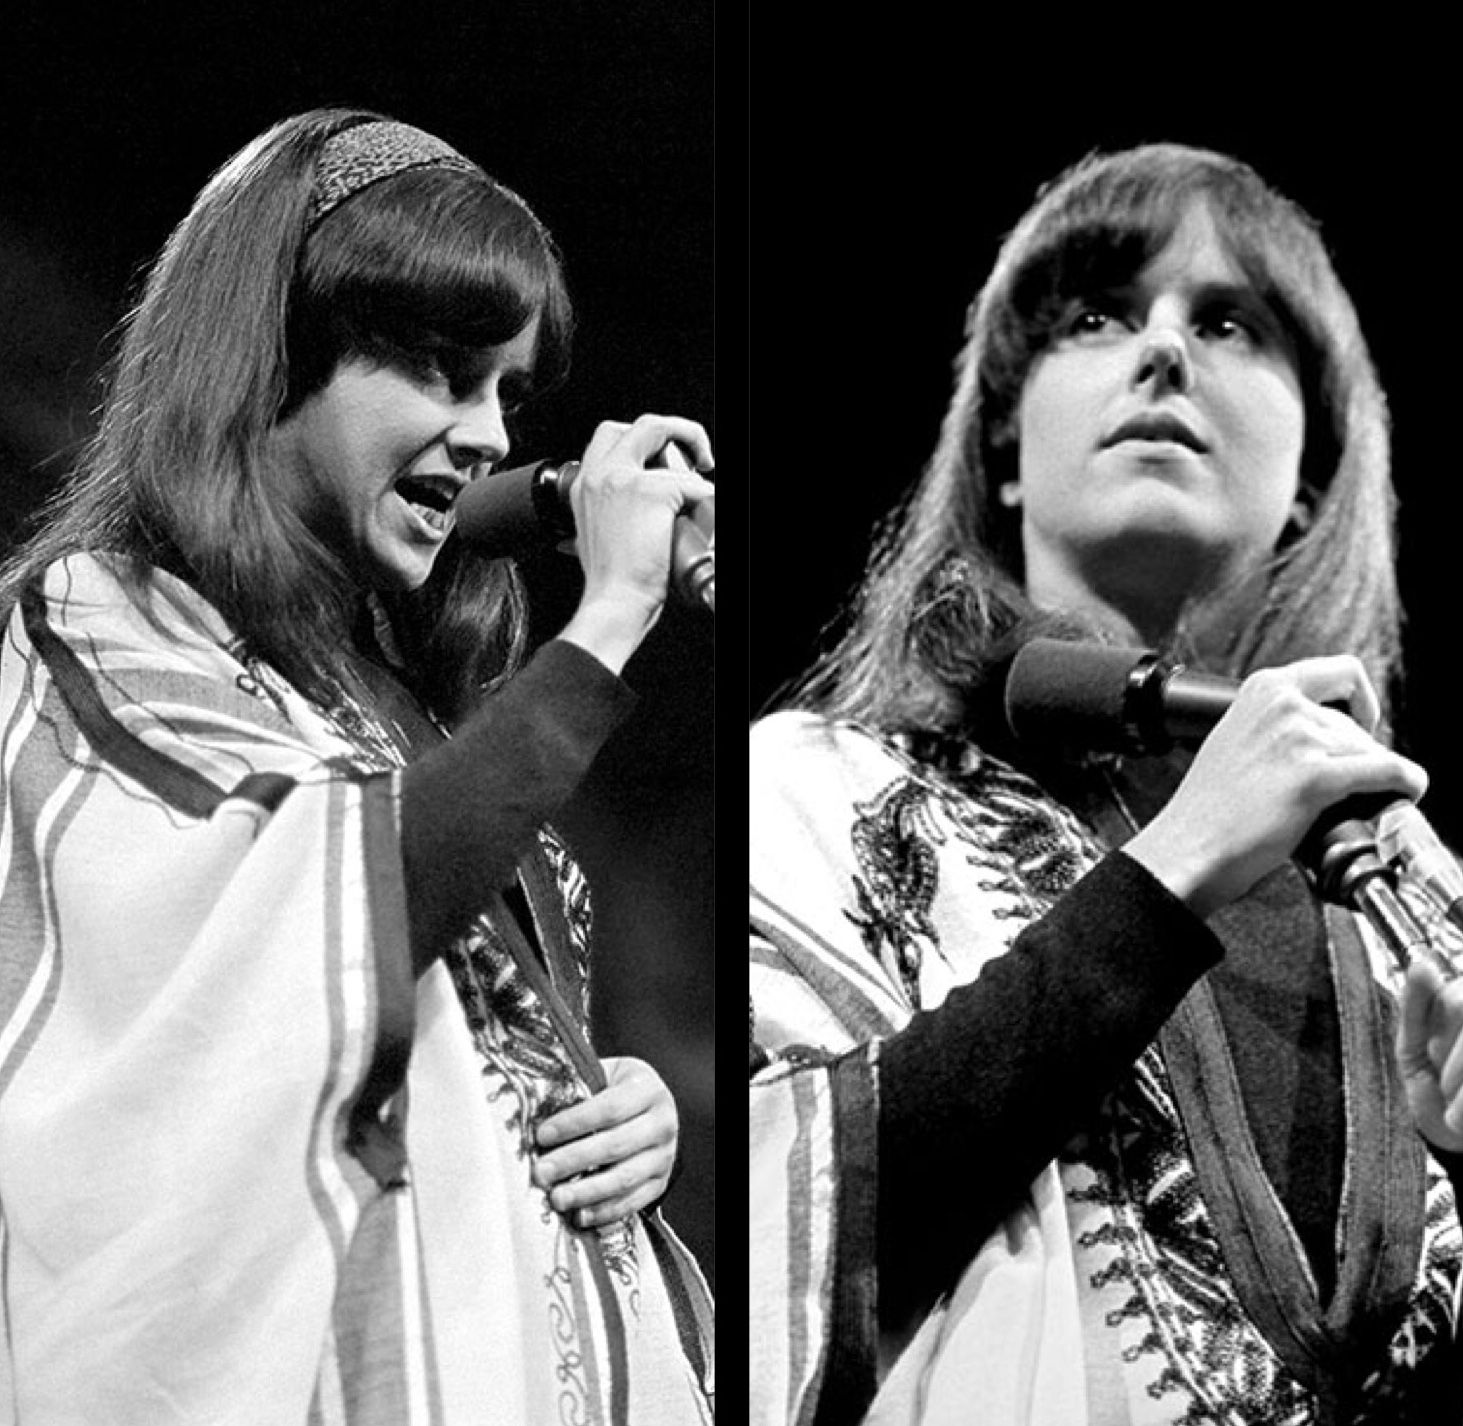 The Queen in her kaftan June 17, 1967 in 2019 Queen, Kaftan